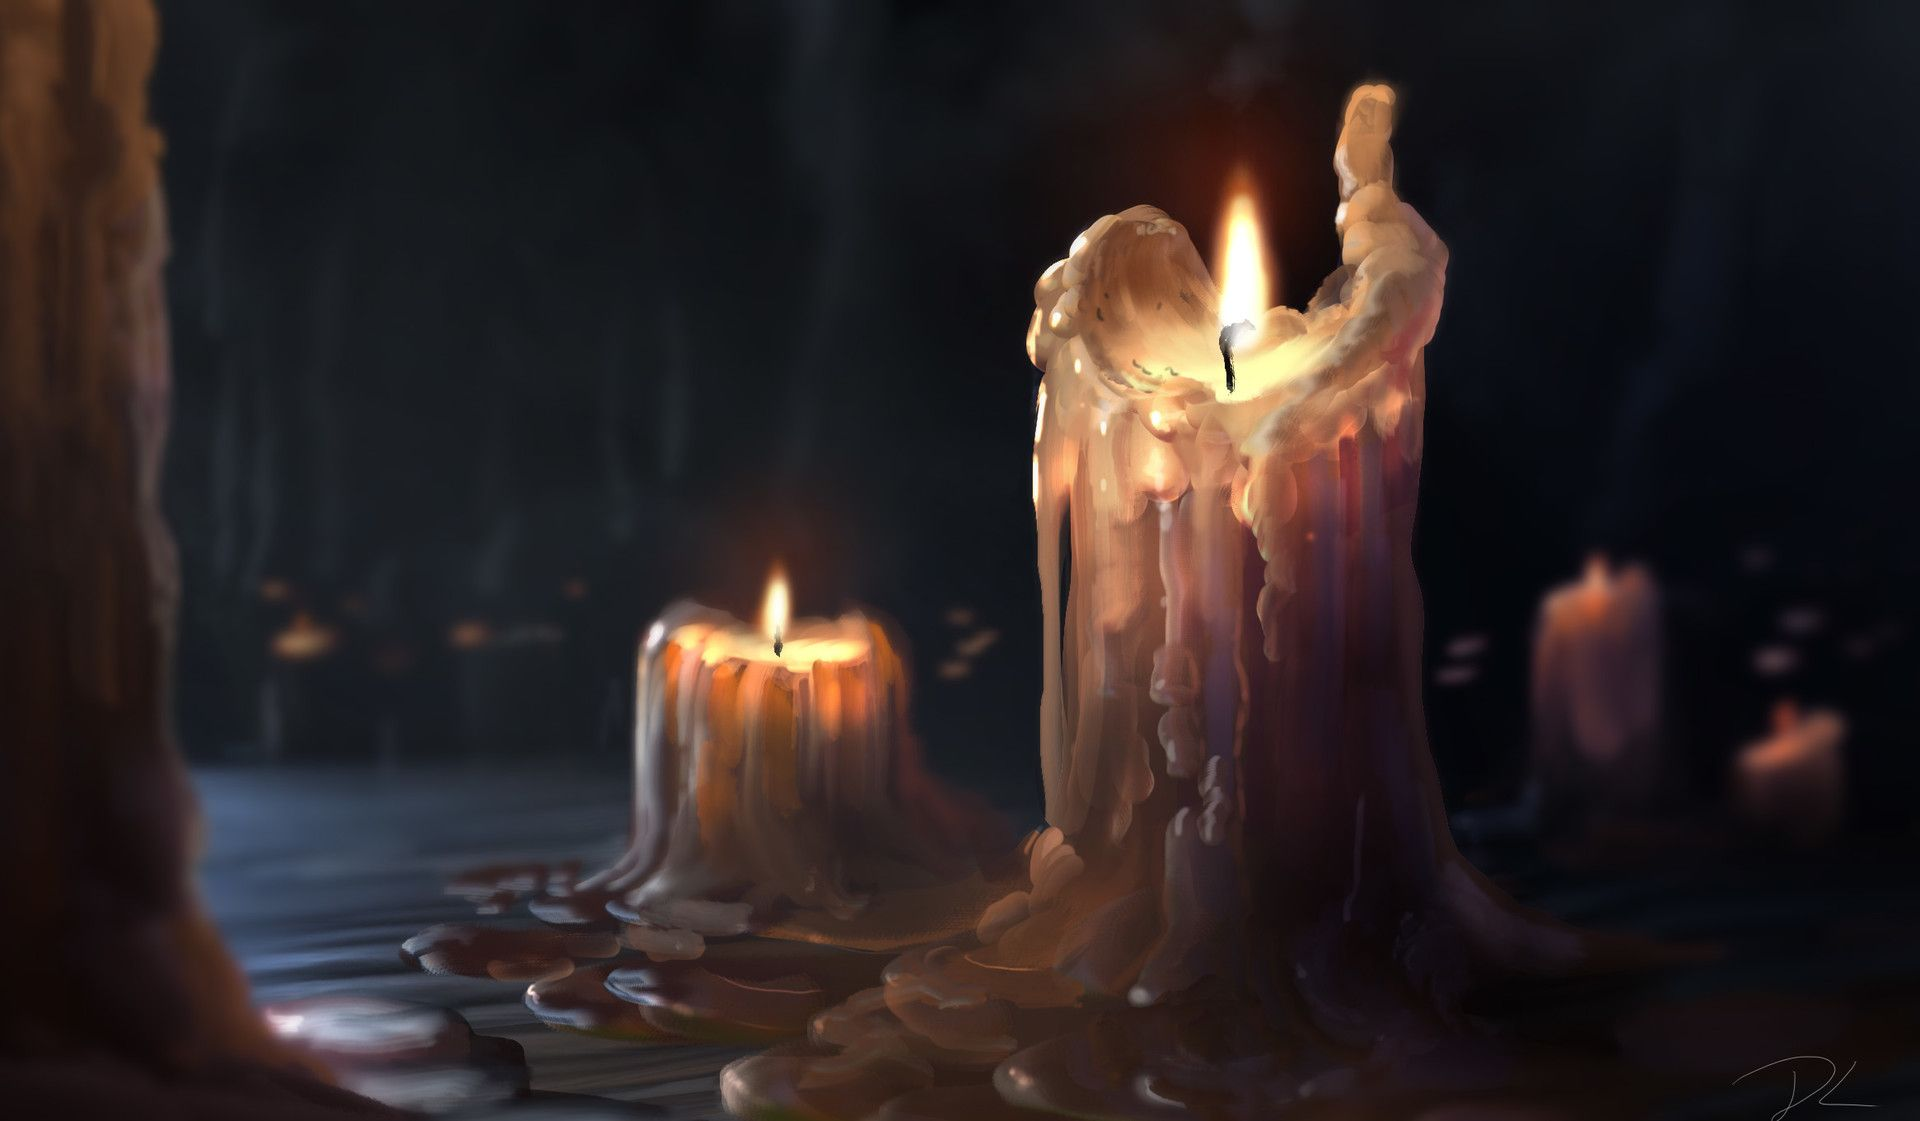 Image: 'Dripping Wax Candles' by Denis Loebner